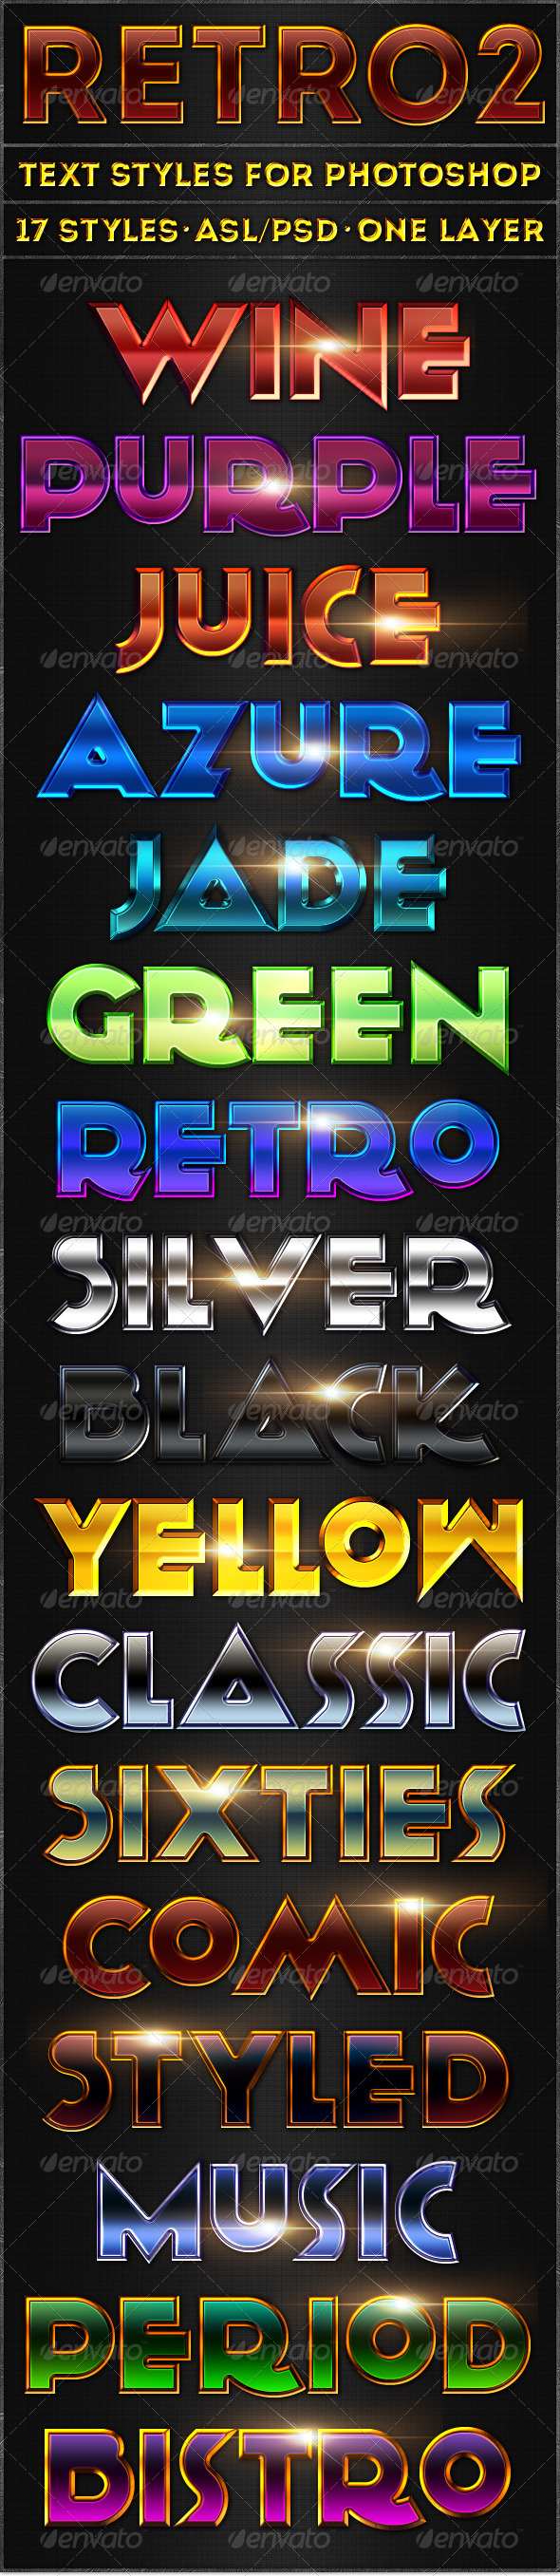 GraphicRiver Retro 2 Text Styles 5375488